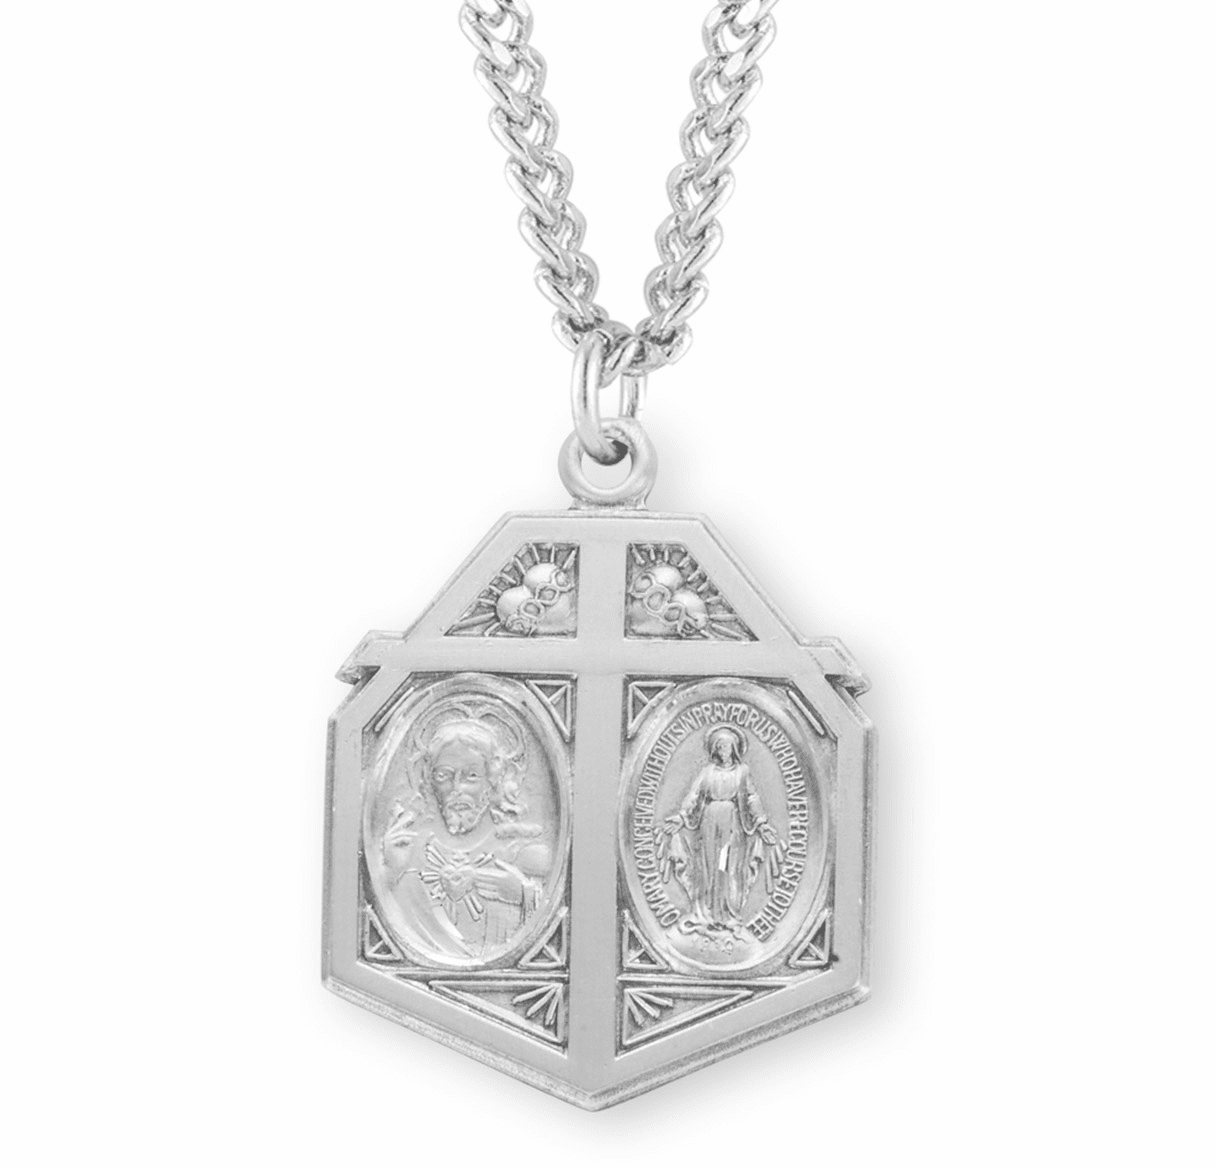 Twin Heart Scapular Medal Sterling Silver Cross Medal Necklace by HMH Religious